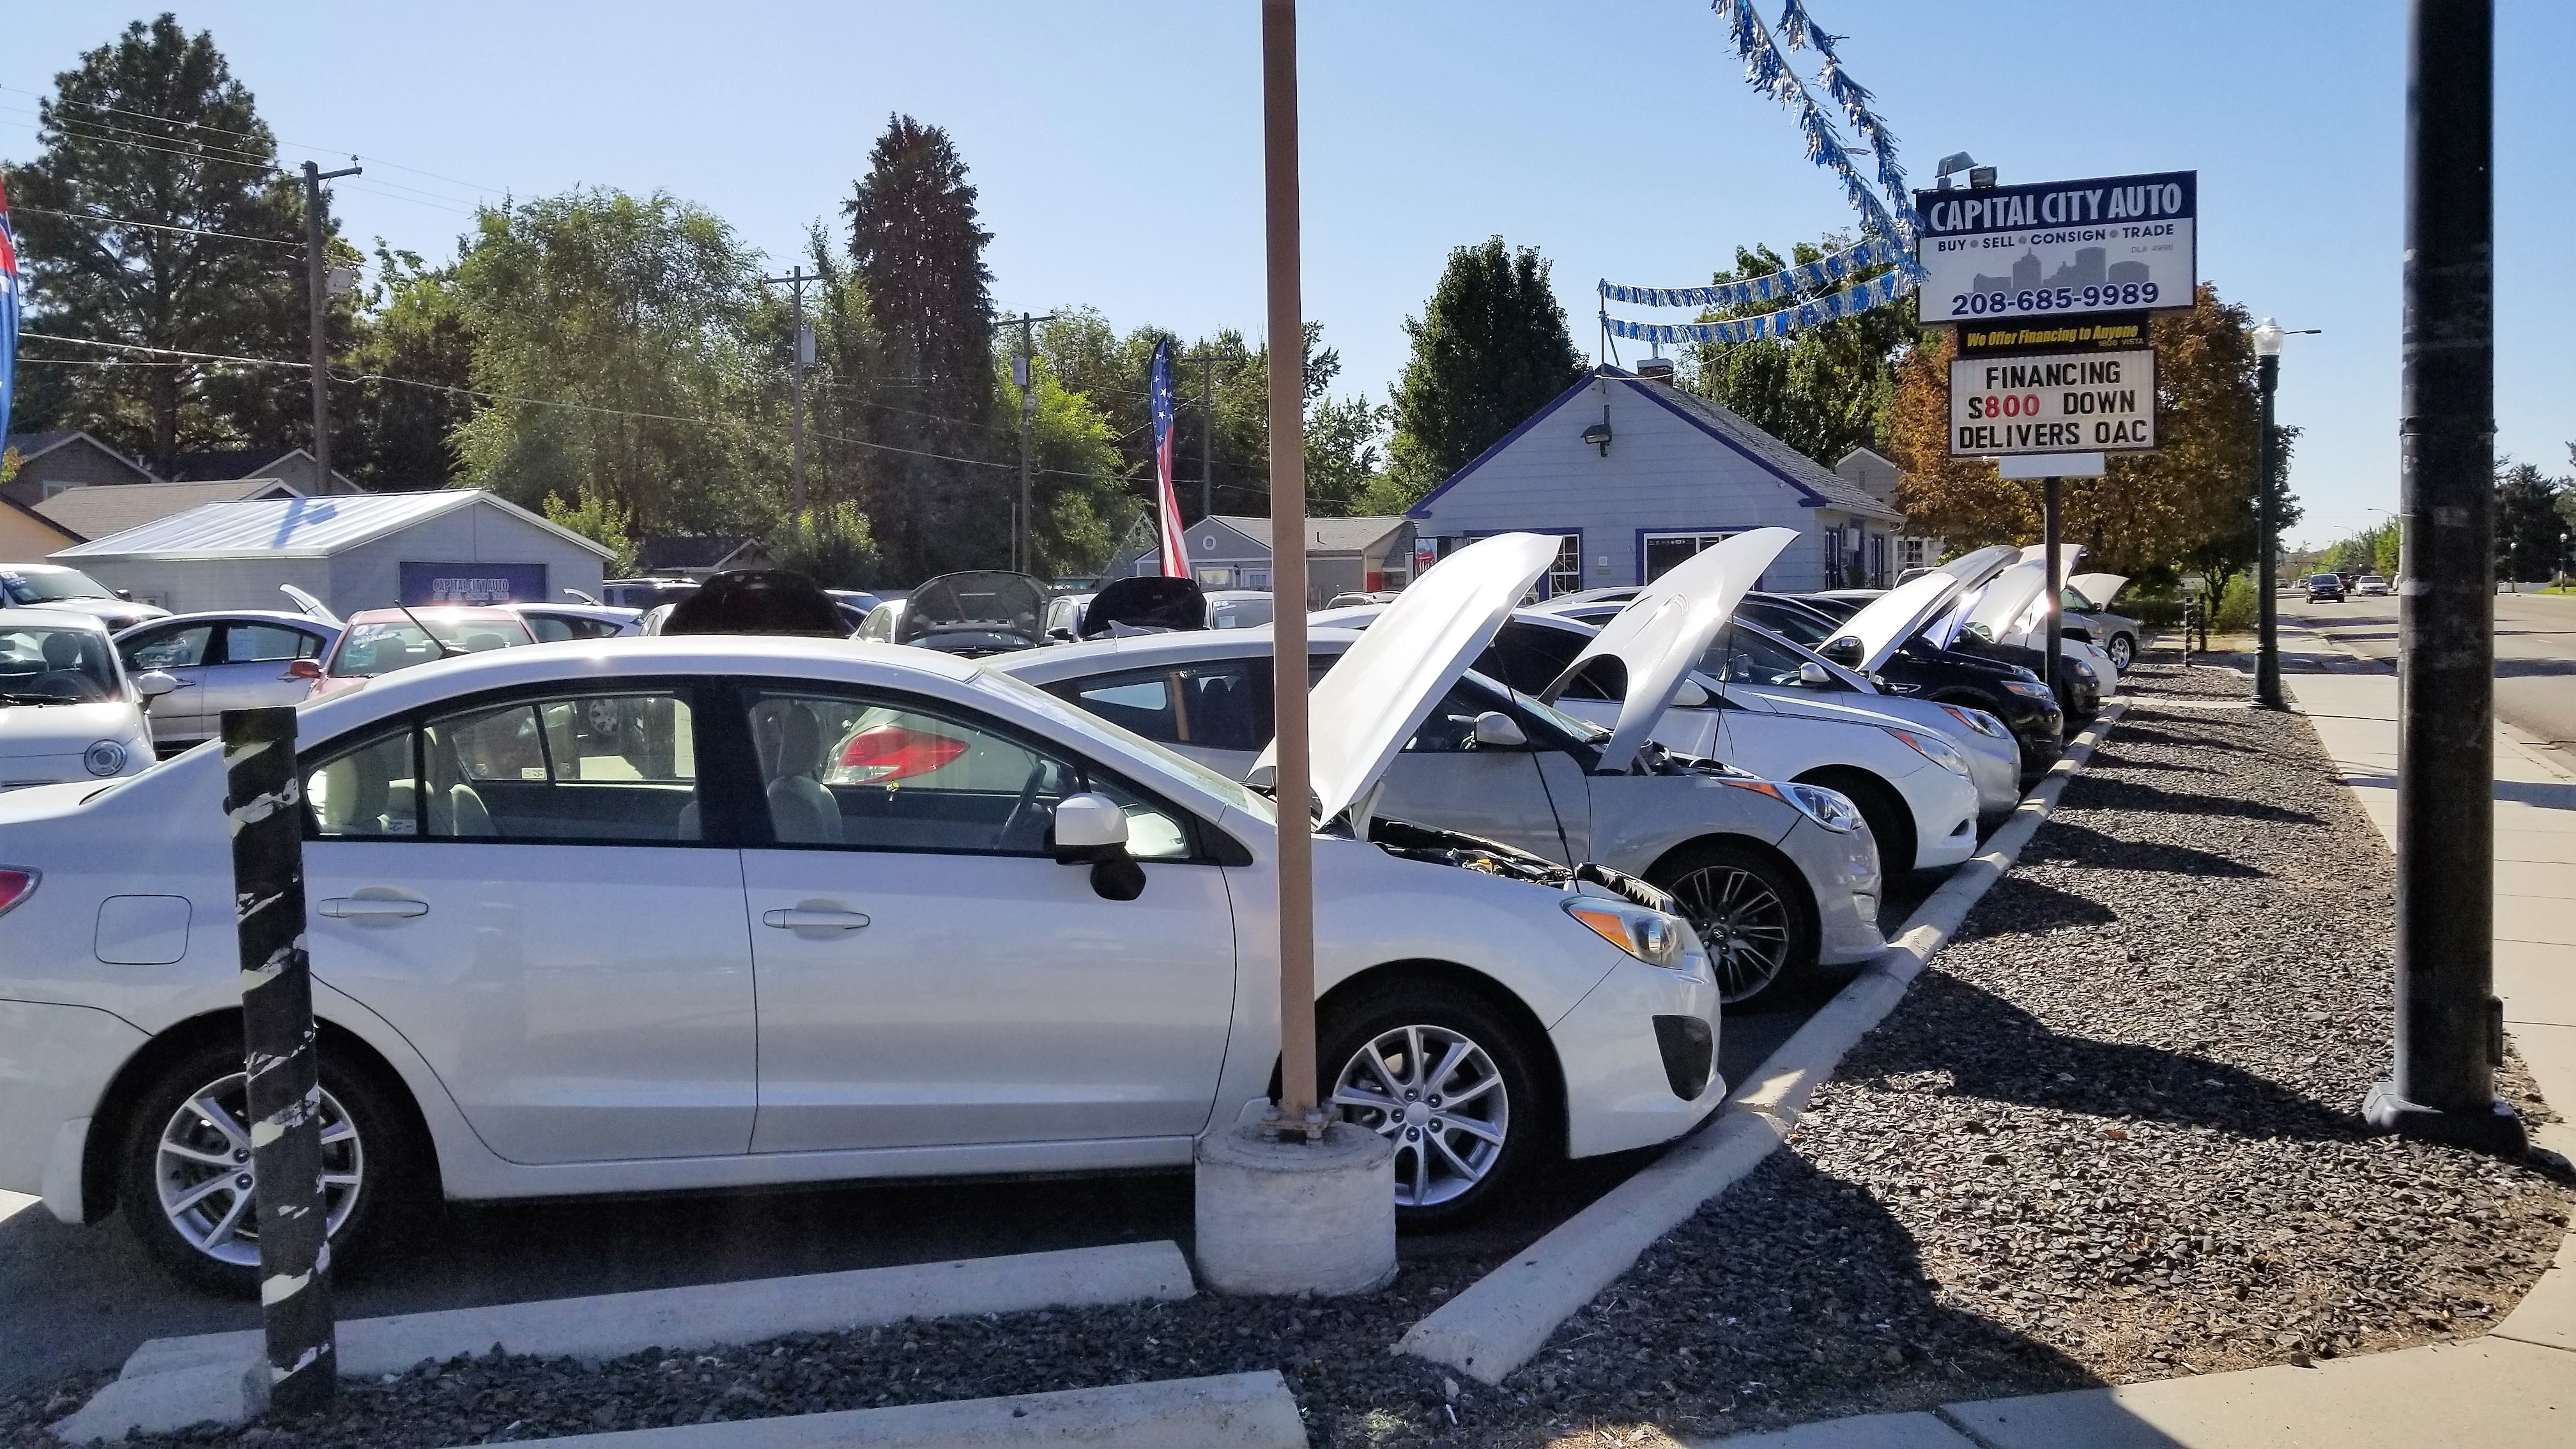 Capital City Auto | Car Dealers at 1808 S Vista Ave - Boise ID - Reviews - Photos - Phone Number